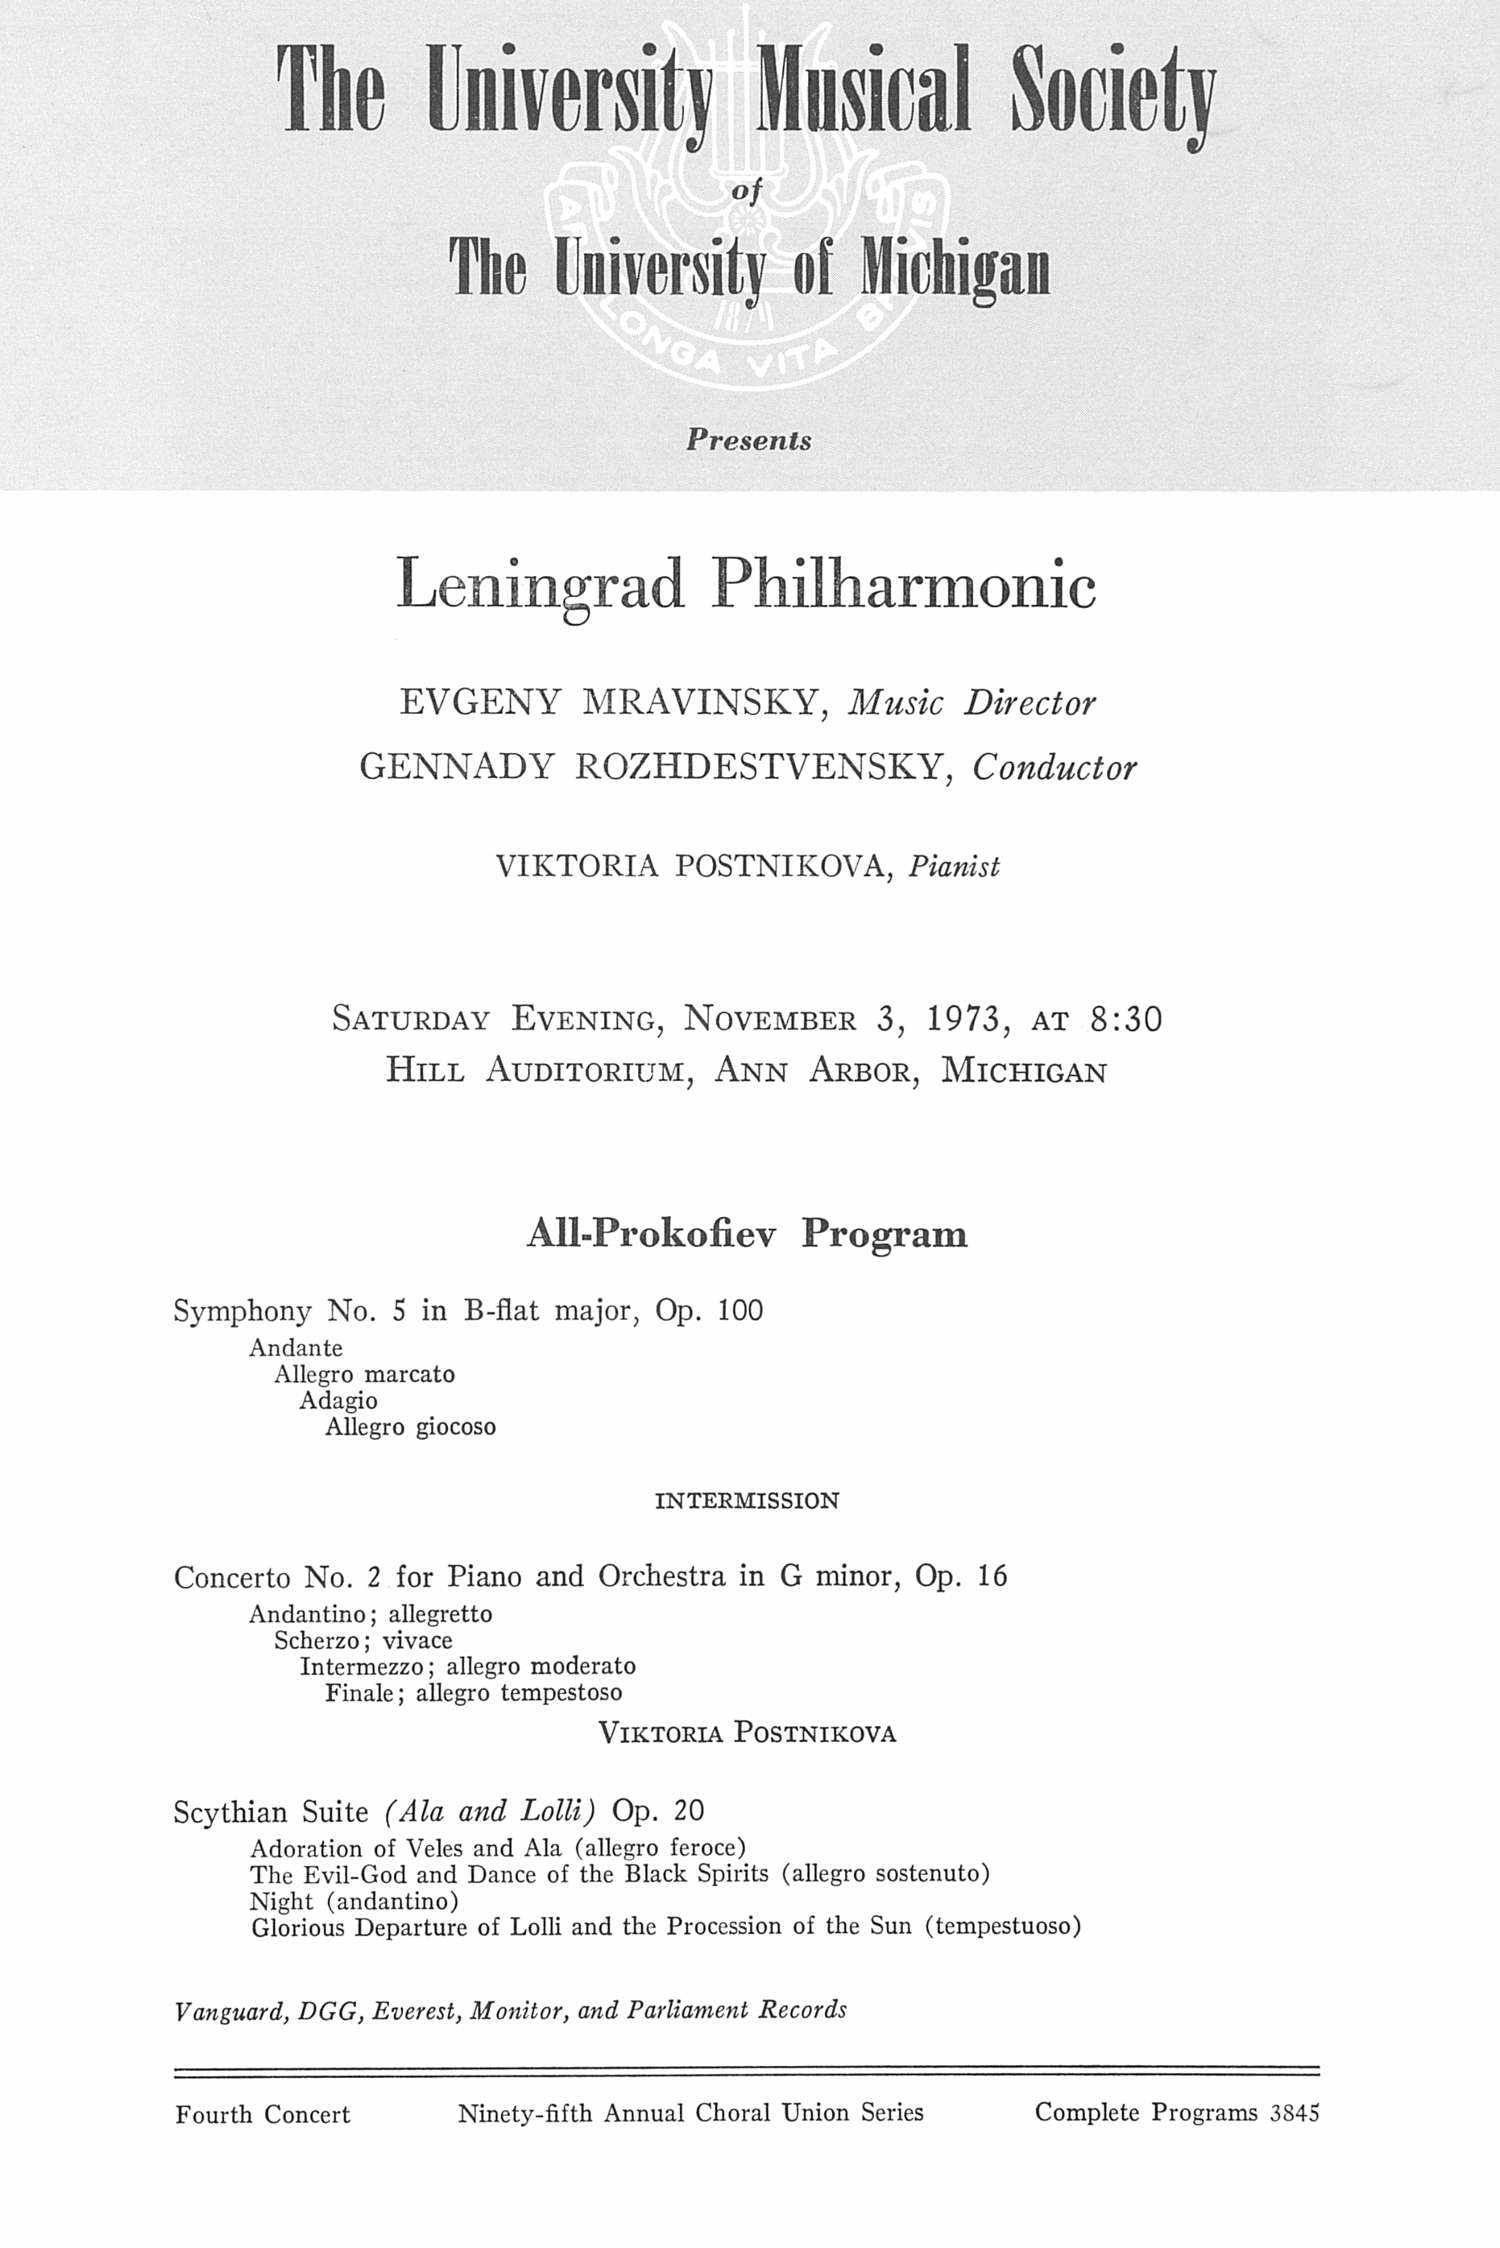 UMS Concert Program, November 4, 1973: Leningrad Philharmonic --  image